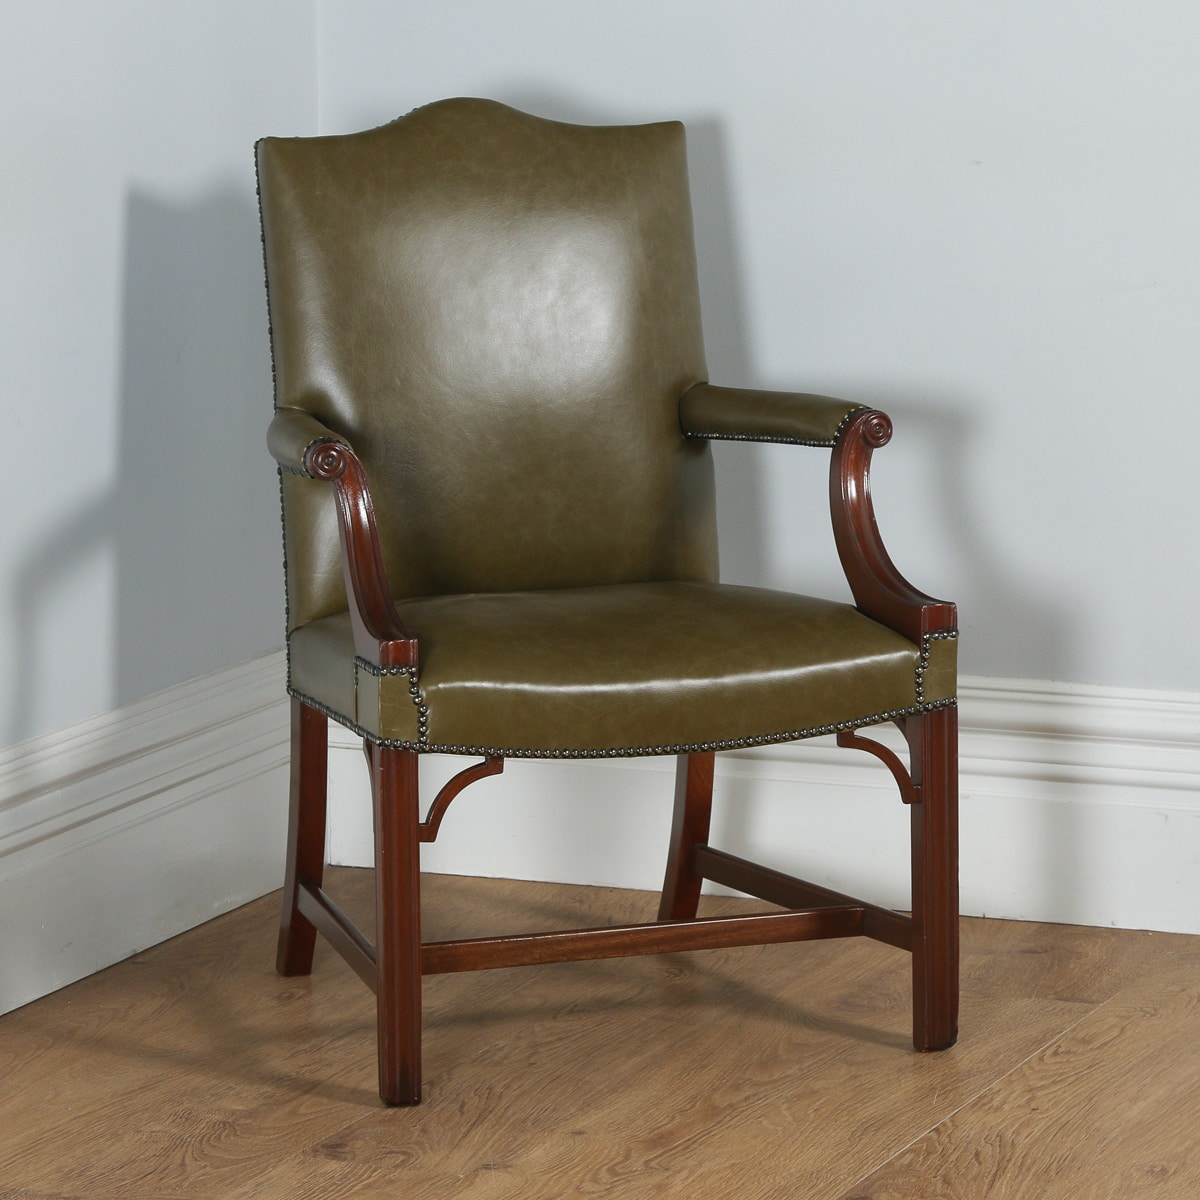 Incredible Antique Gainsborough Style Mahogany Green Leather Armchair Machost Co Dining Chair Design Ideas Machostcouk